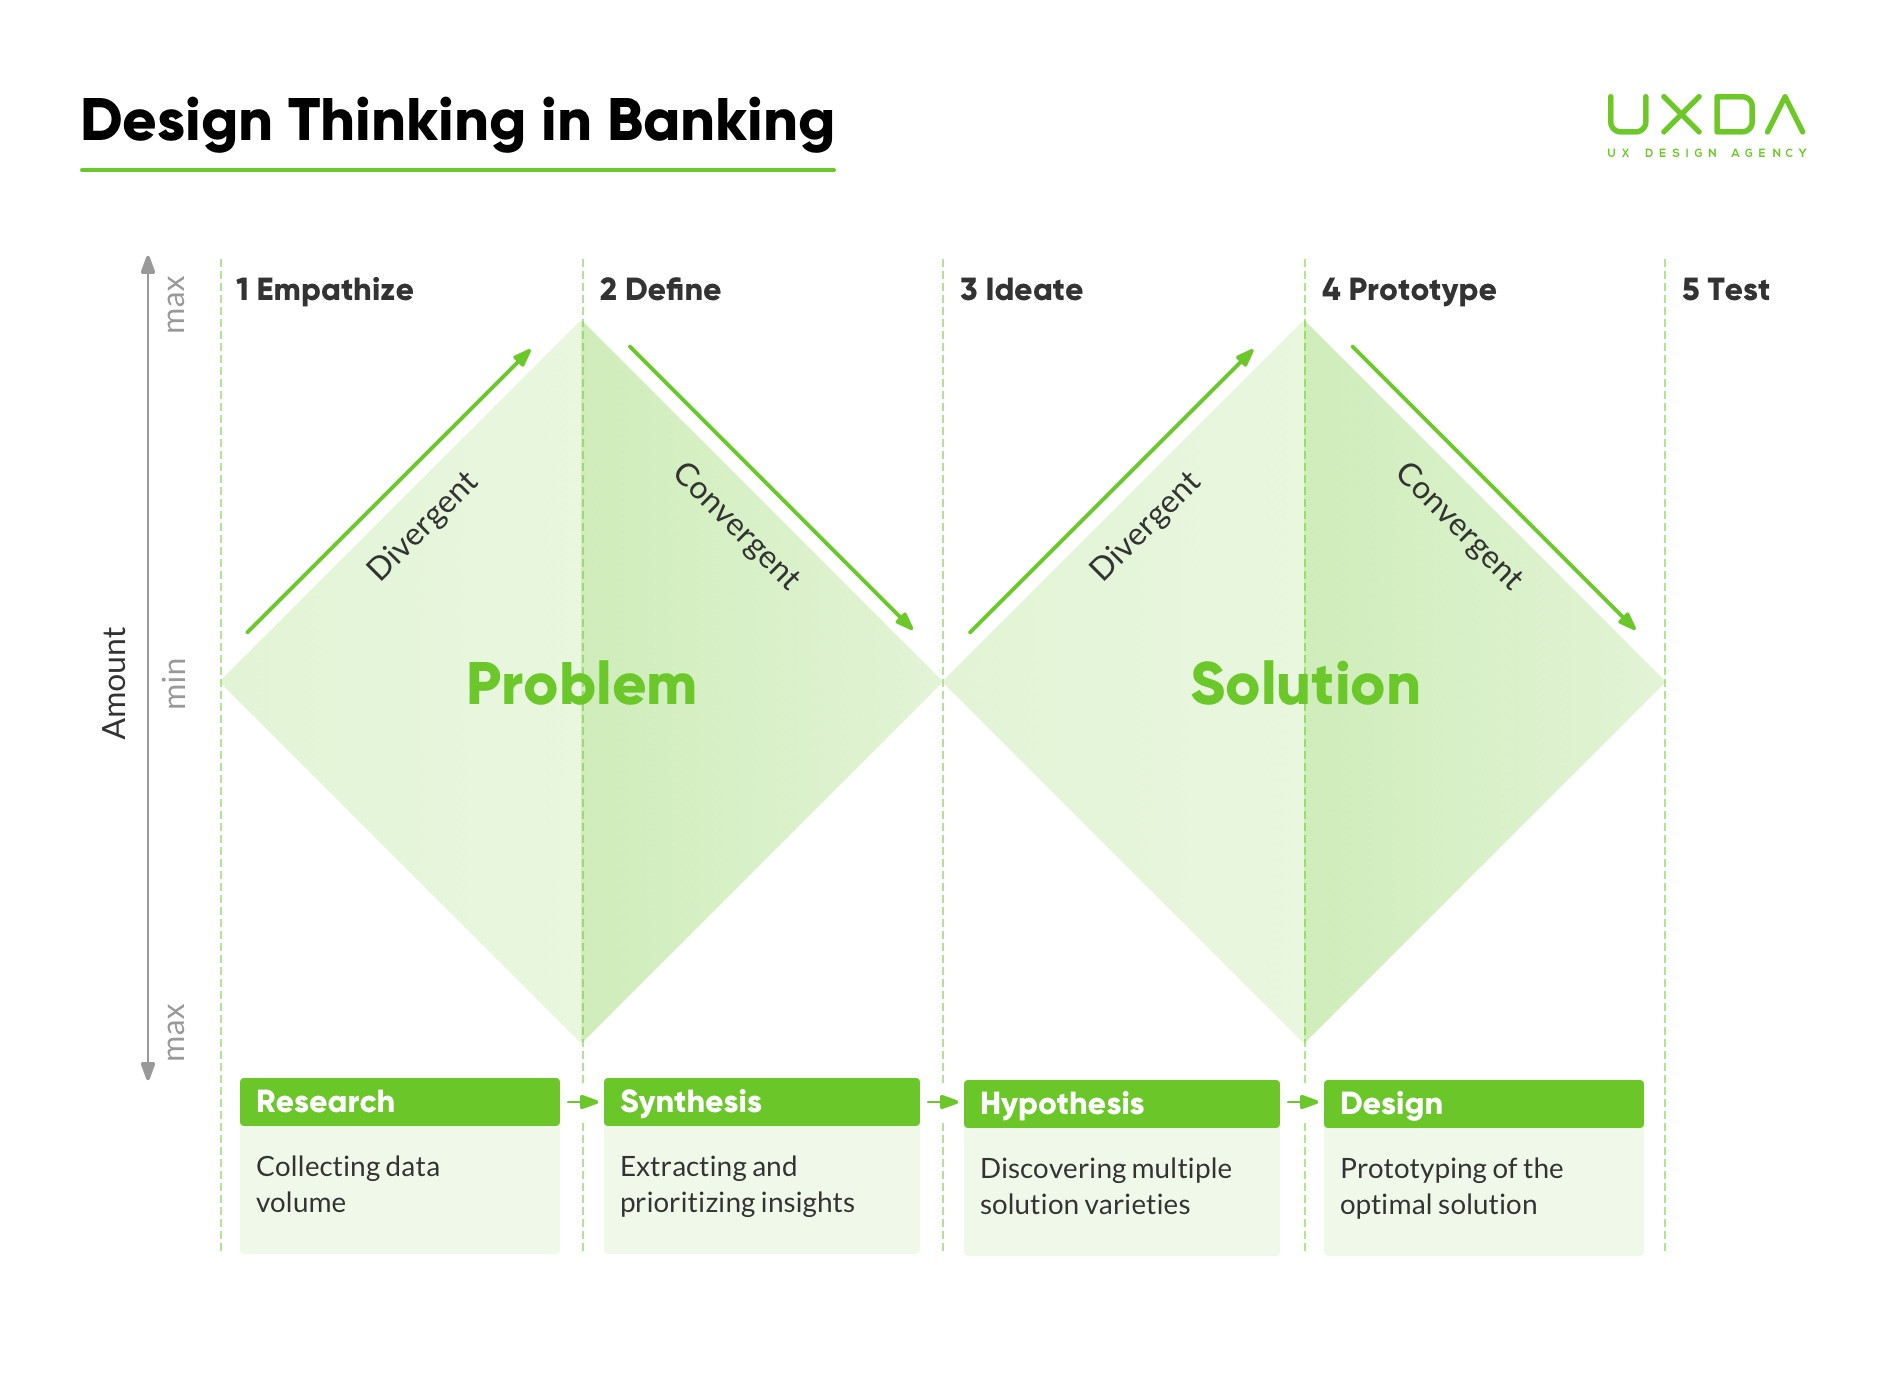 design-thinking-in-banking-double-diamond-M-2.jpg.jpg